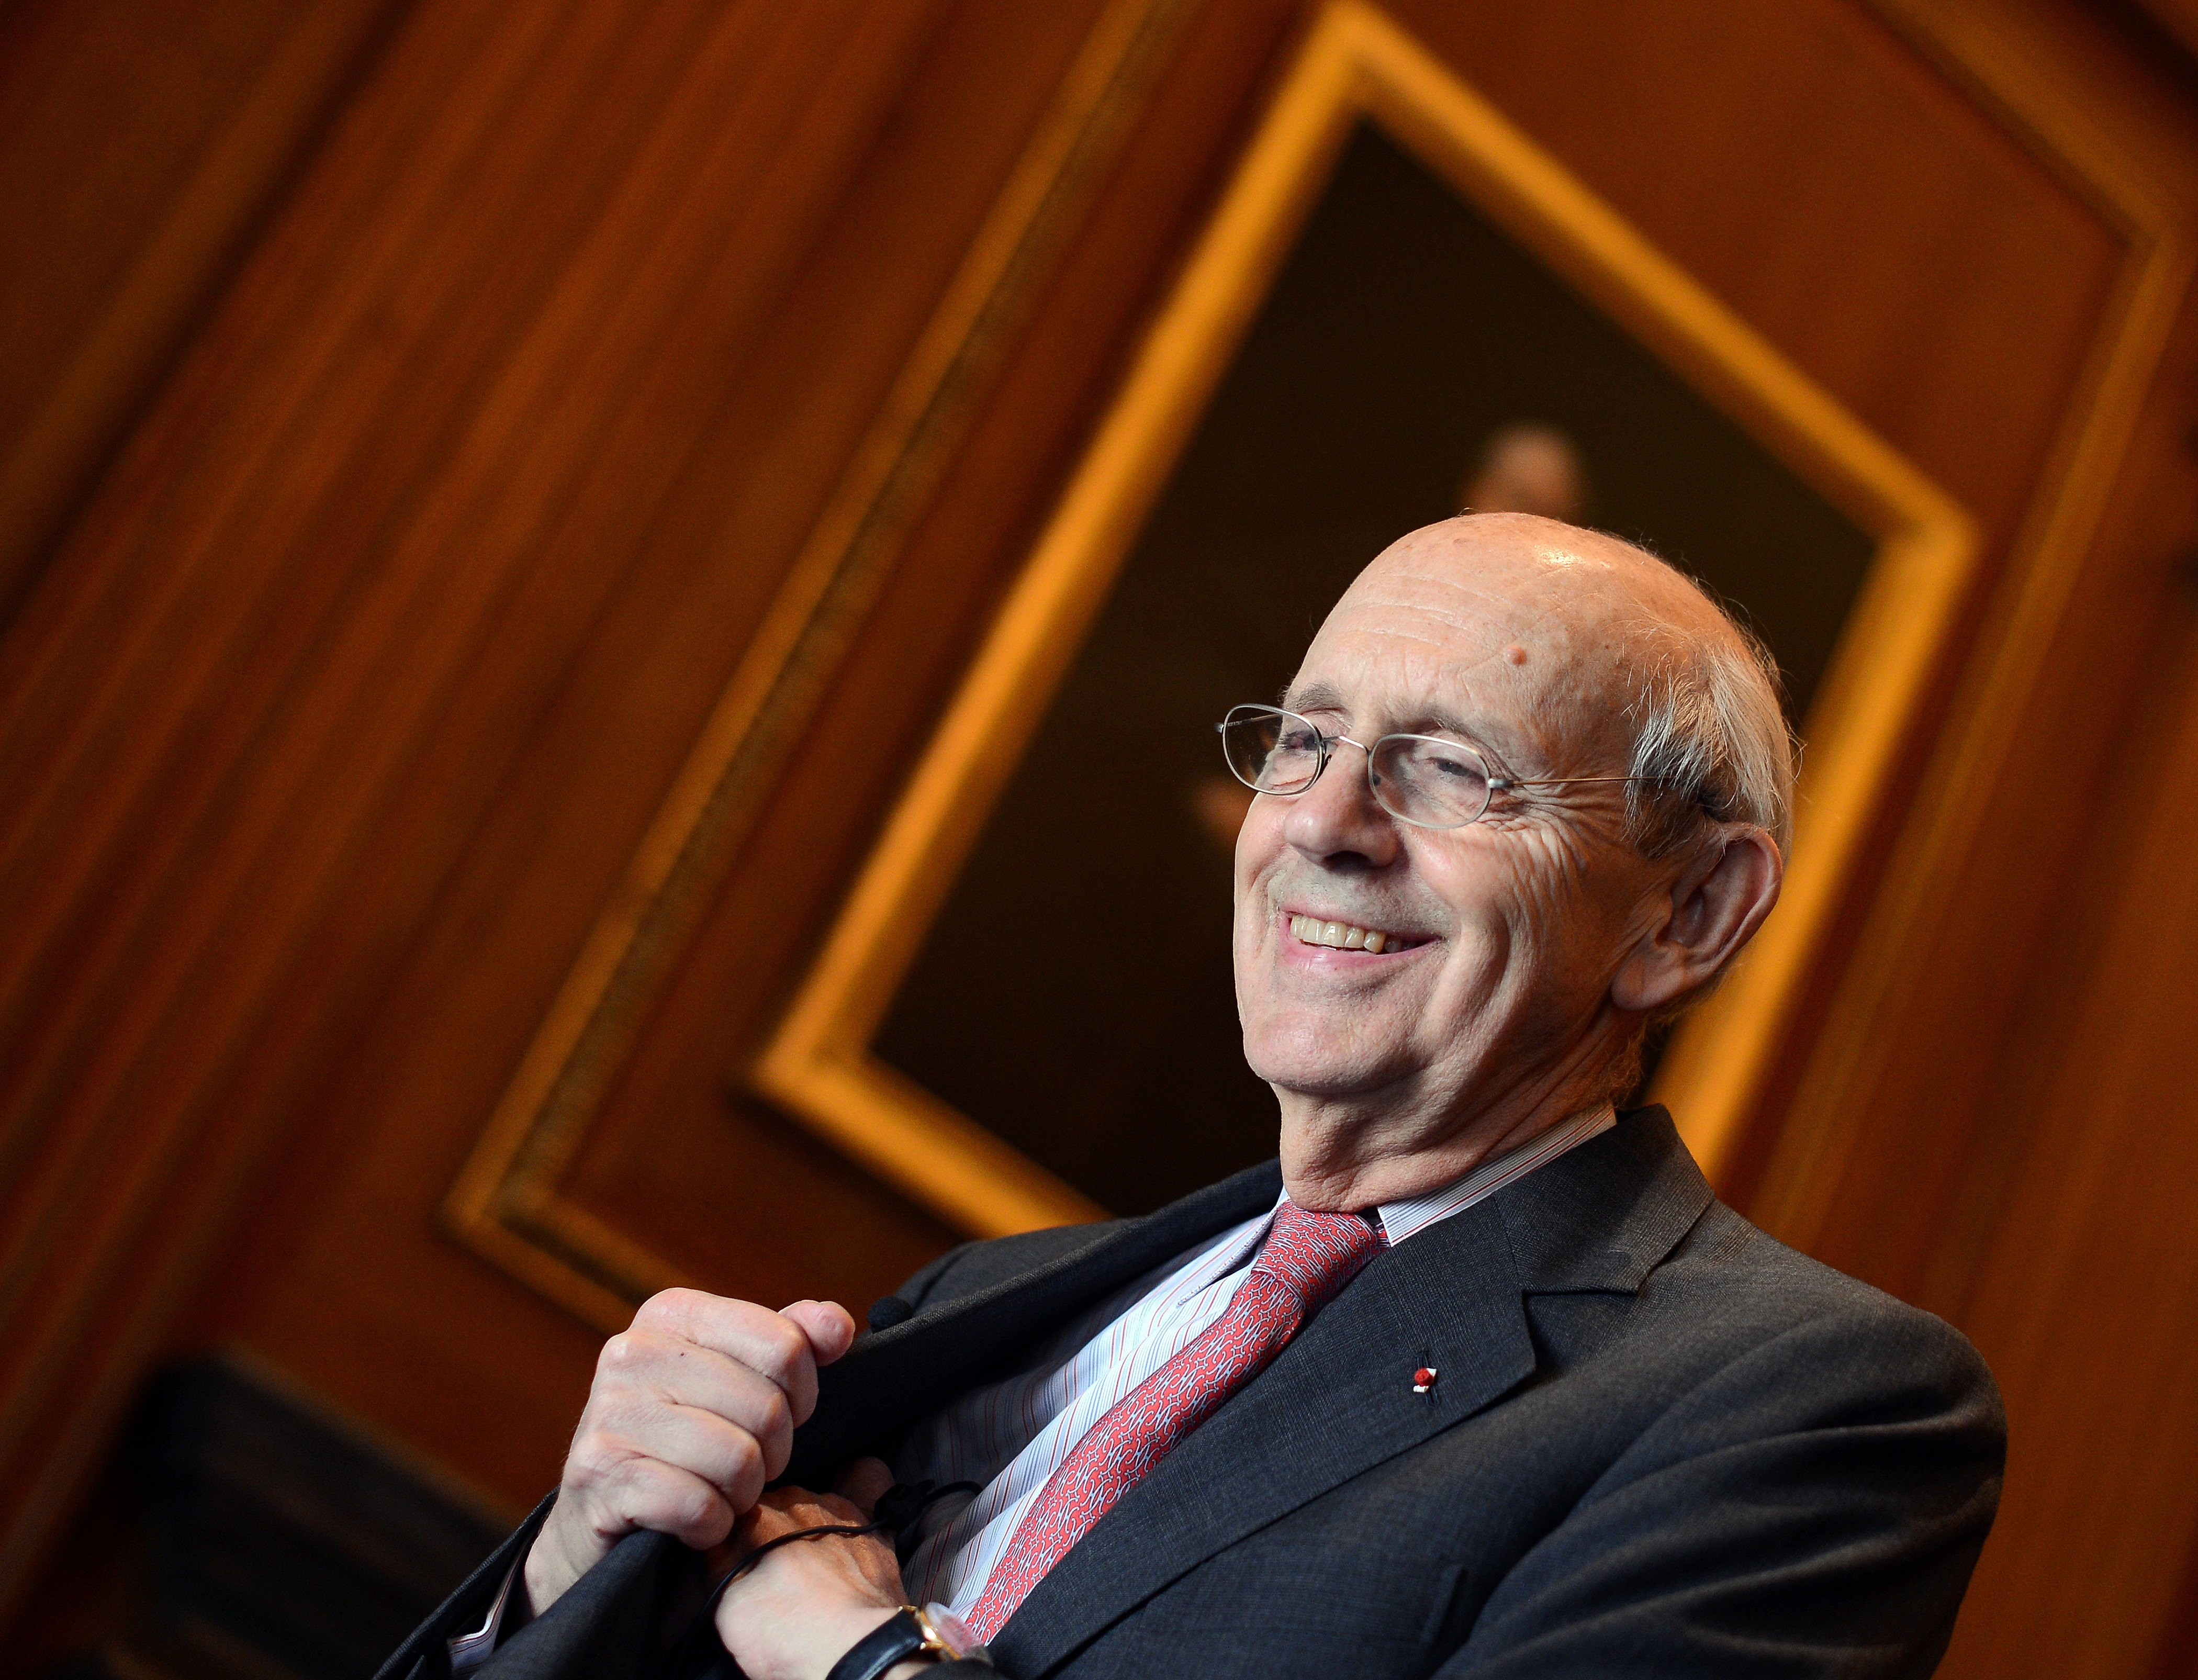 Justice Stephen Breyer sits for an interview with Agence France-Presse at the Supreme Court on May 17, 2012. (Jewel Samad/AFP/GettyImages)